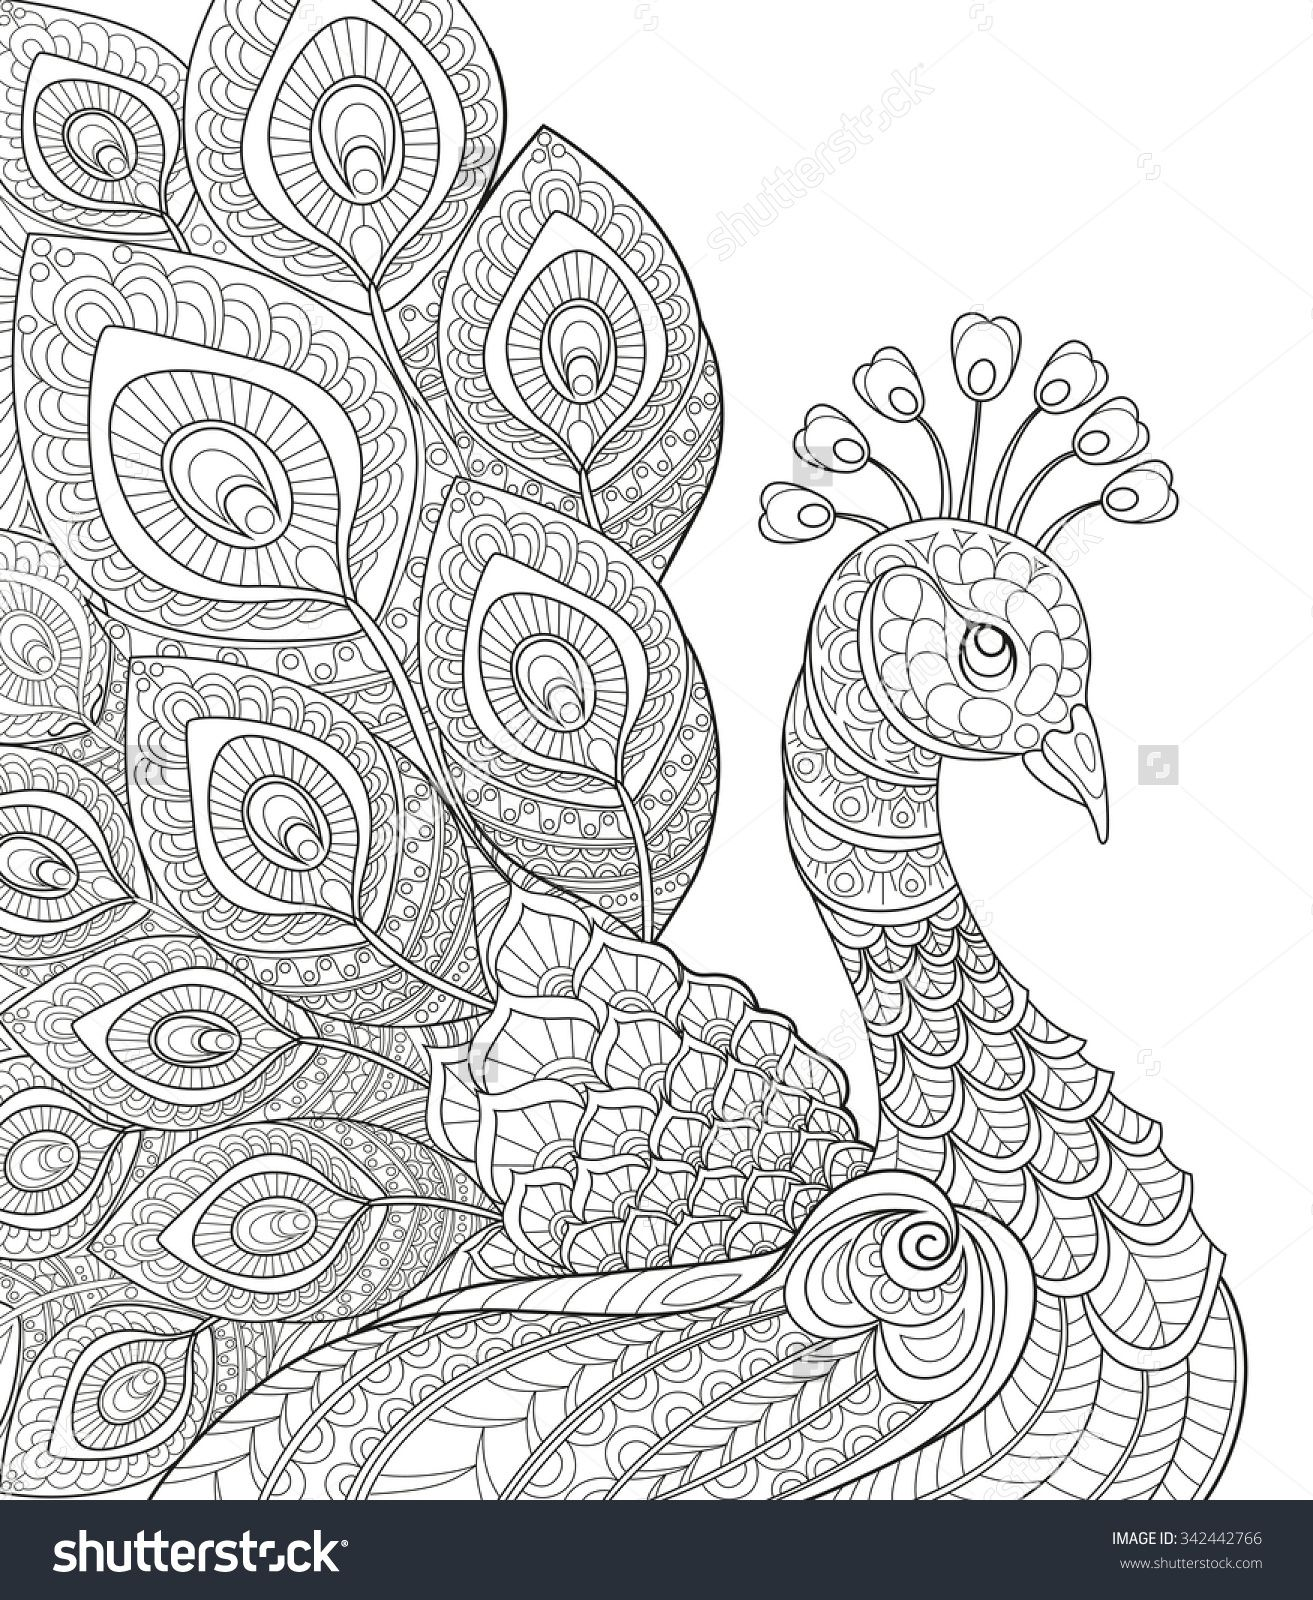 Peacock Adult Antistress Coloring Page Black And White